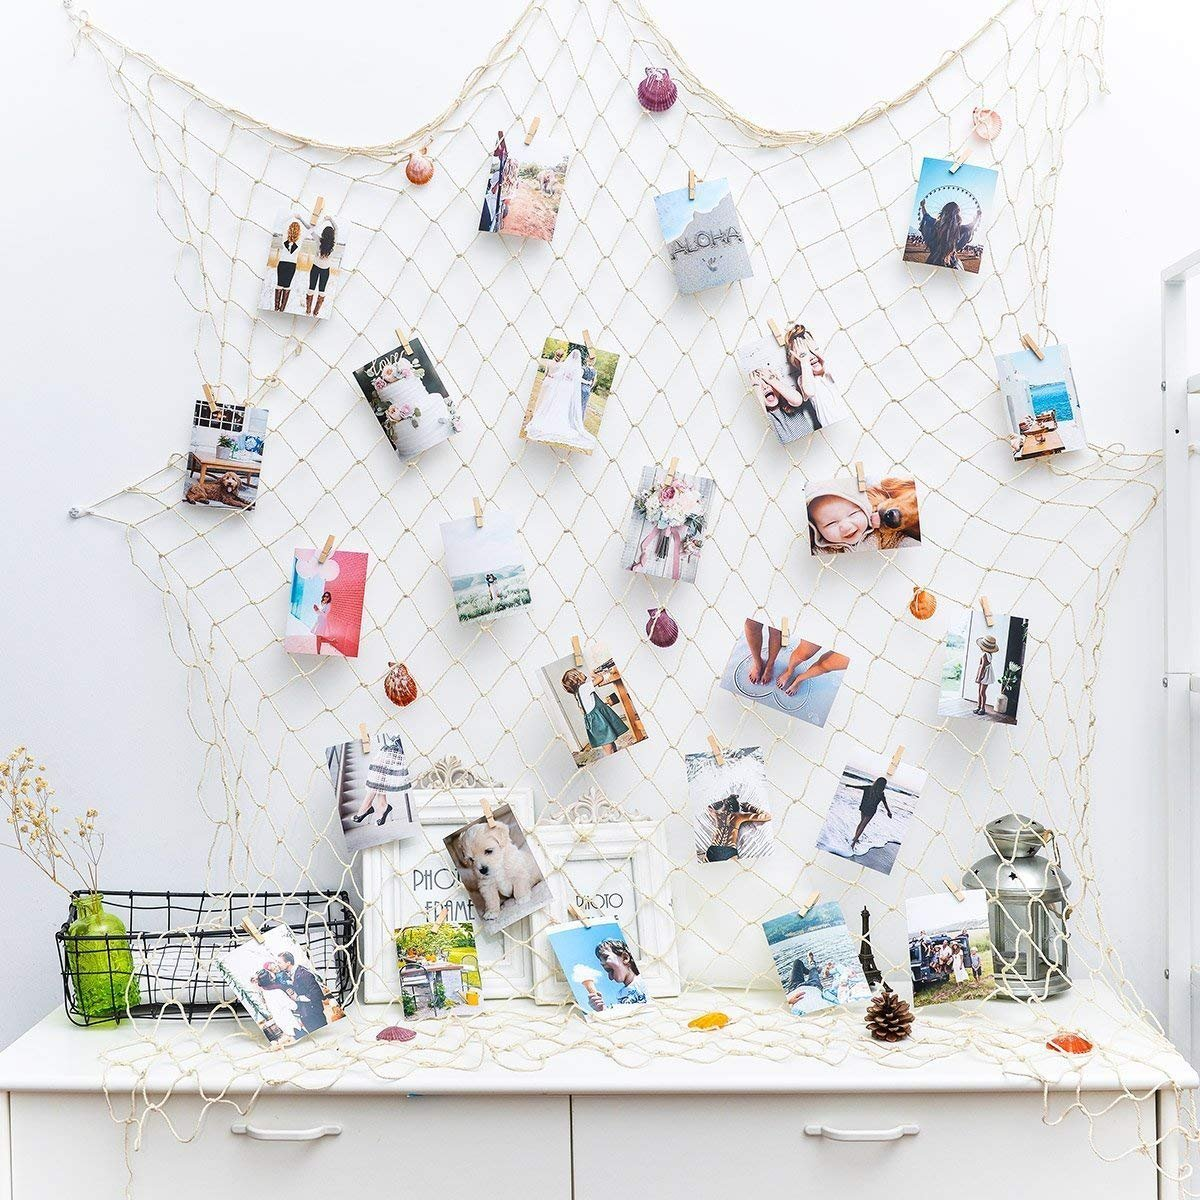 HAYATA ⭐️Photo Hanging Display with 40 Clip Fishing Net Wall Decor - Picture Frames & Prints Multi Photos Organizer & Collage Artworks - Nautical Decorative Dorm Bedroom Christmas Decorations QG01